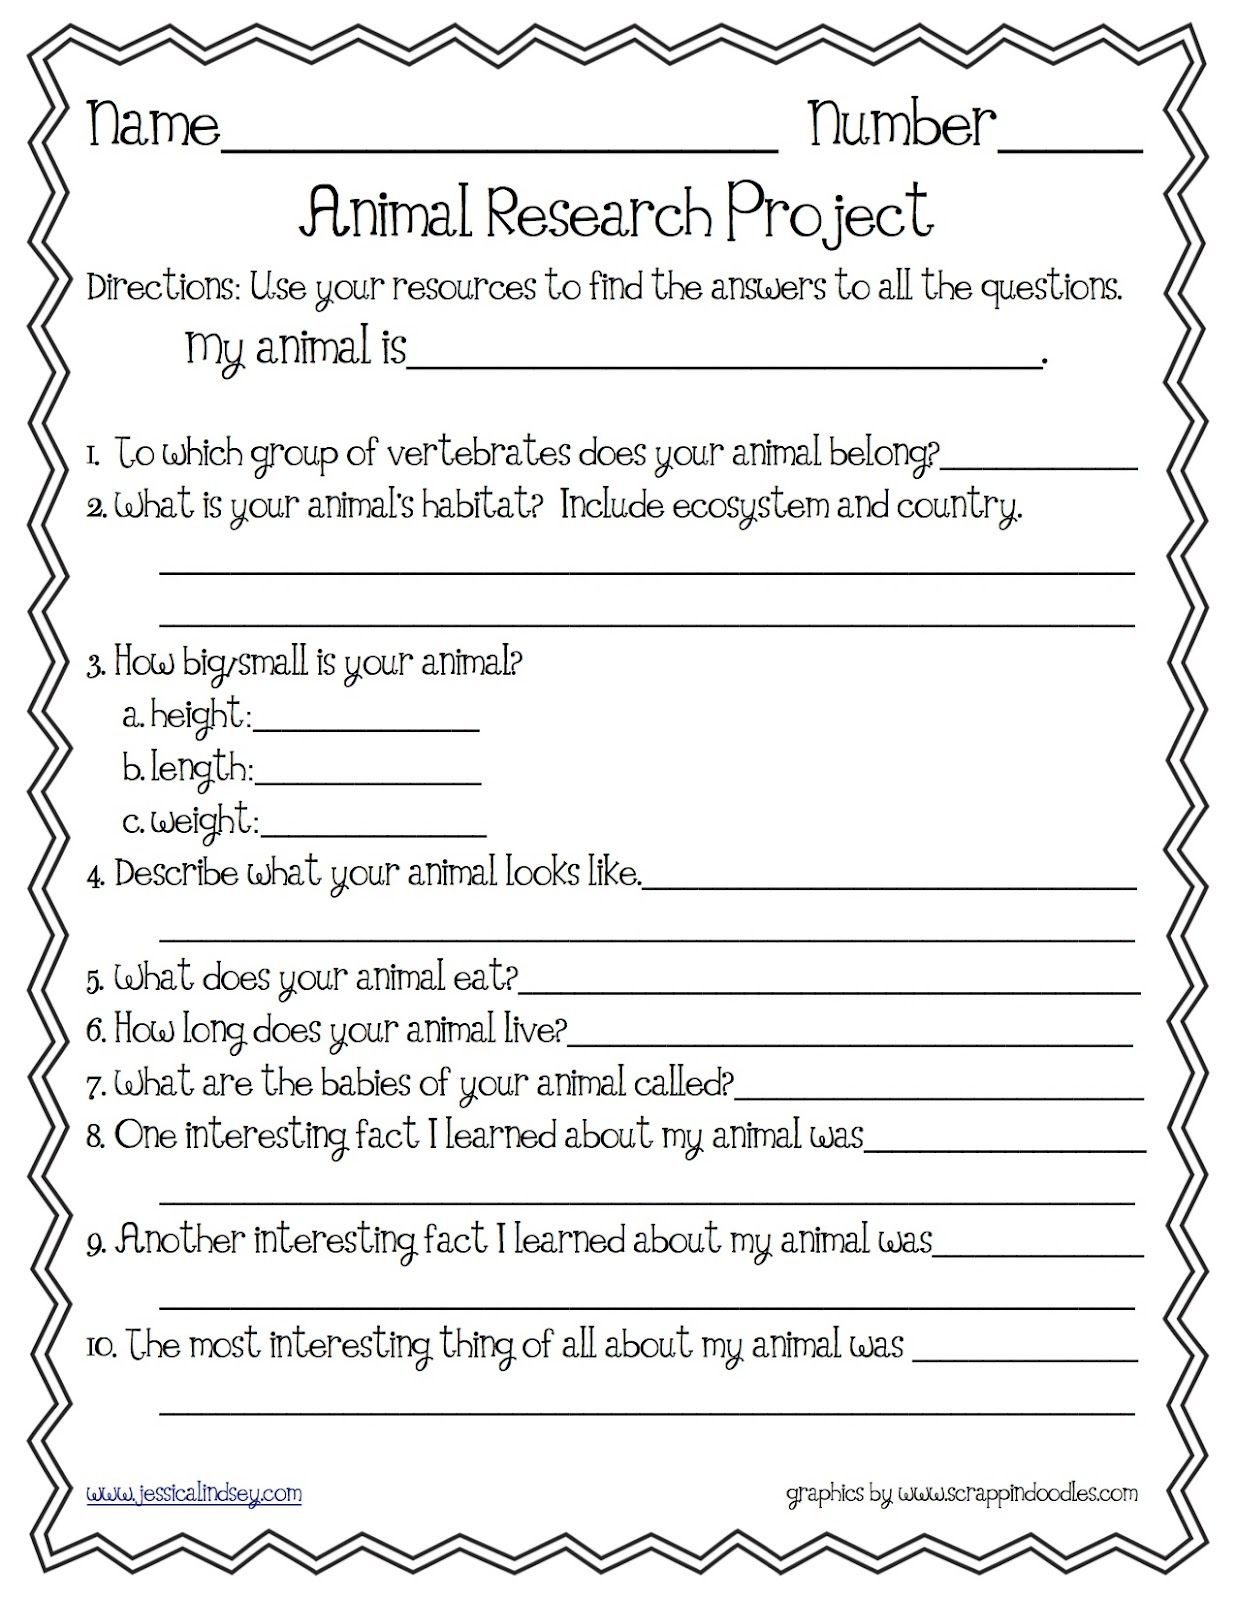 011 Research Paper Animal Striking Topics Behavior Farm Topic Ideas Full